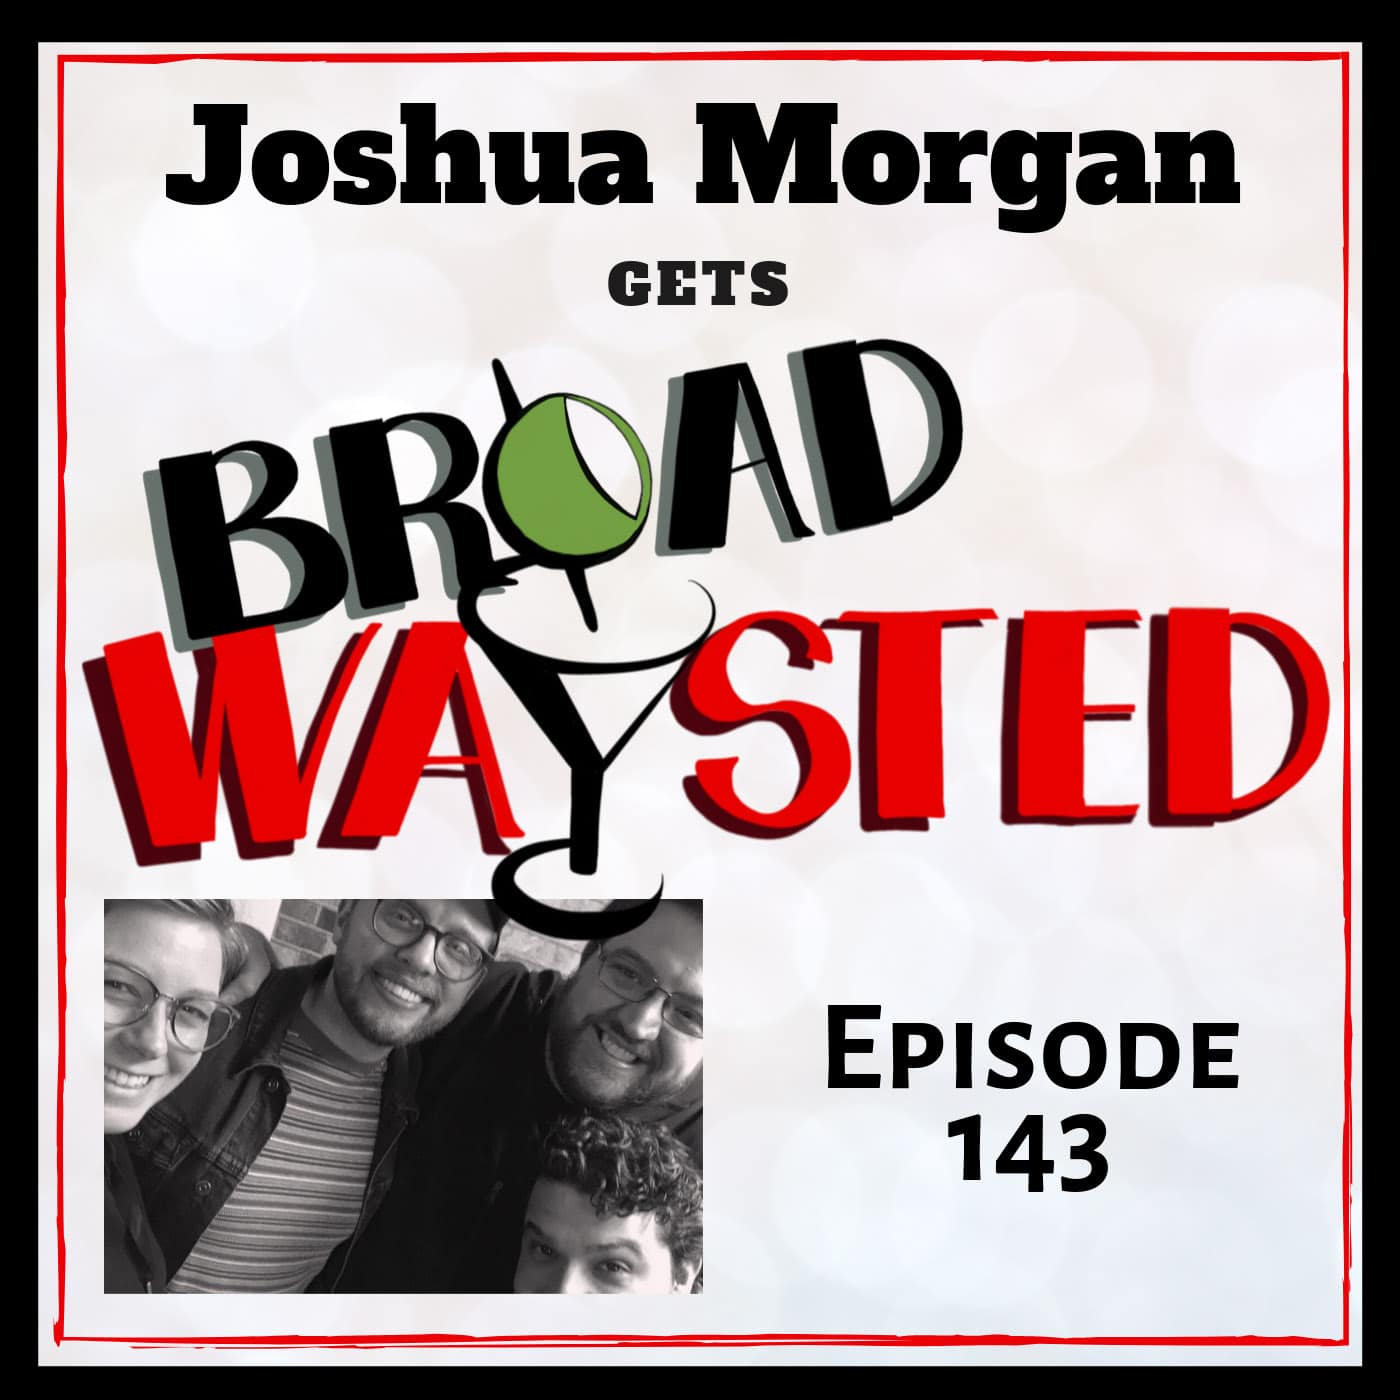 Broadwaysted Ep 143 Joshua Morgan